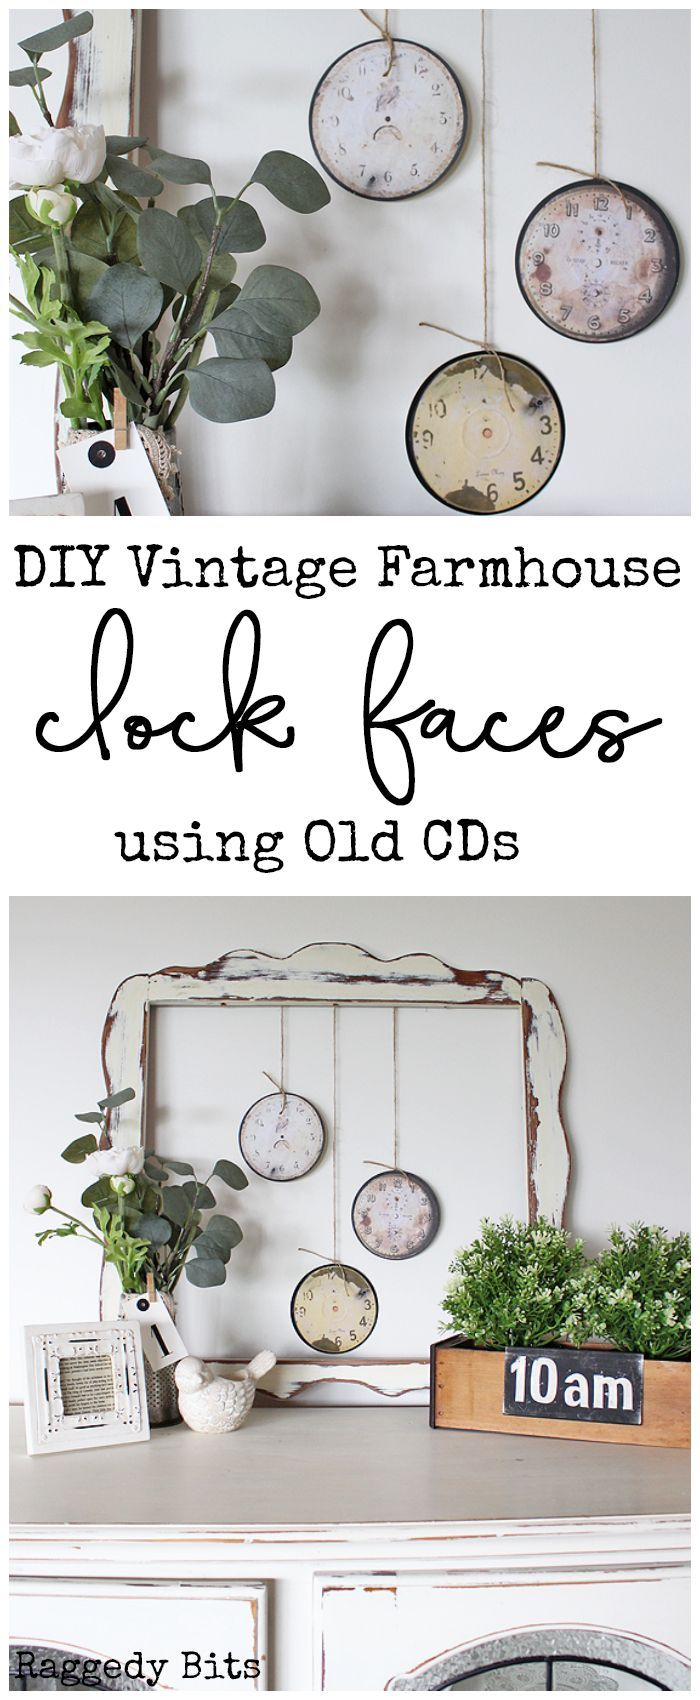 DIY Vintage Farmhouse Clock Faces using Old CDs - Diy vintage decor, Diy vintage, Handmade home decor, Vintage farmhouse, Vintage decor, Farmhouse diy - See a fun way to make DIY Vintage Farmhouse Clock Faces repurposing old CDS to add some Vintage Farmhouse Charm to your home